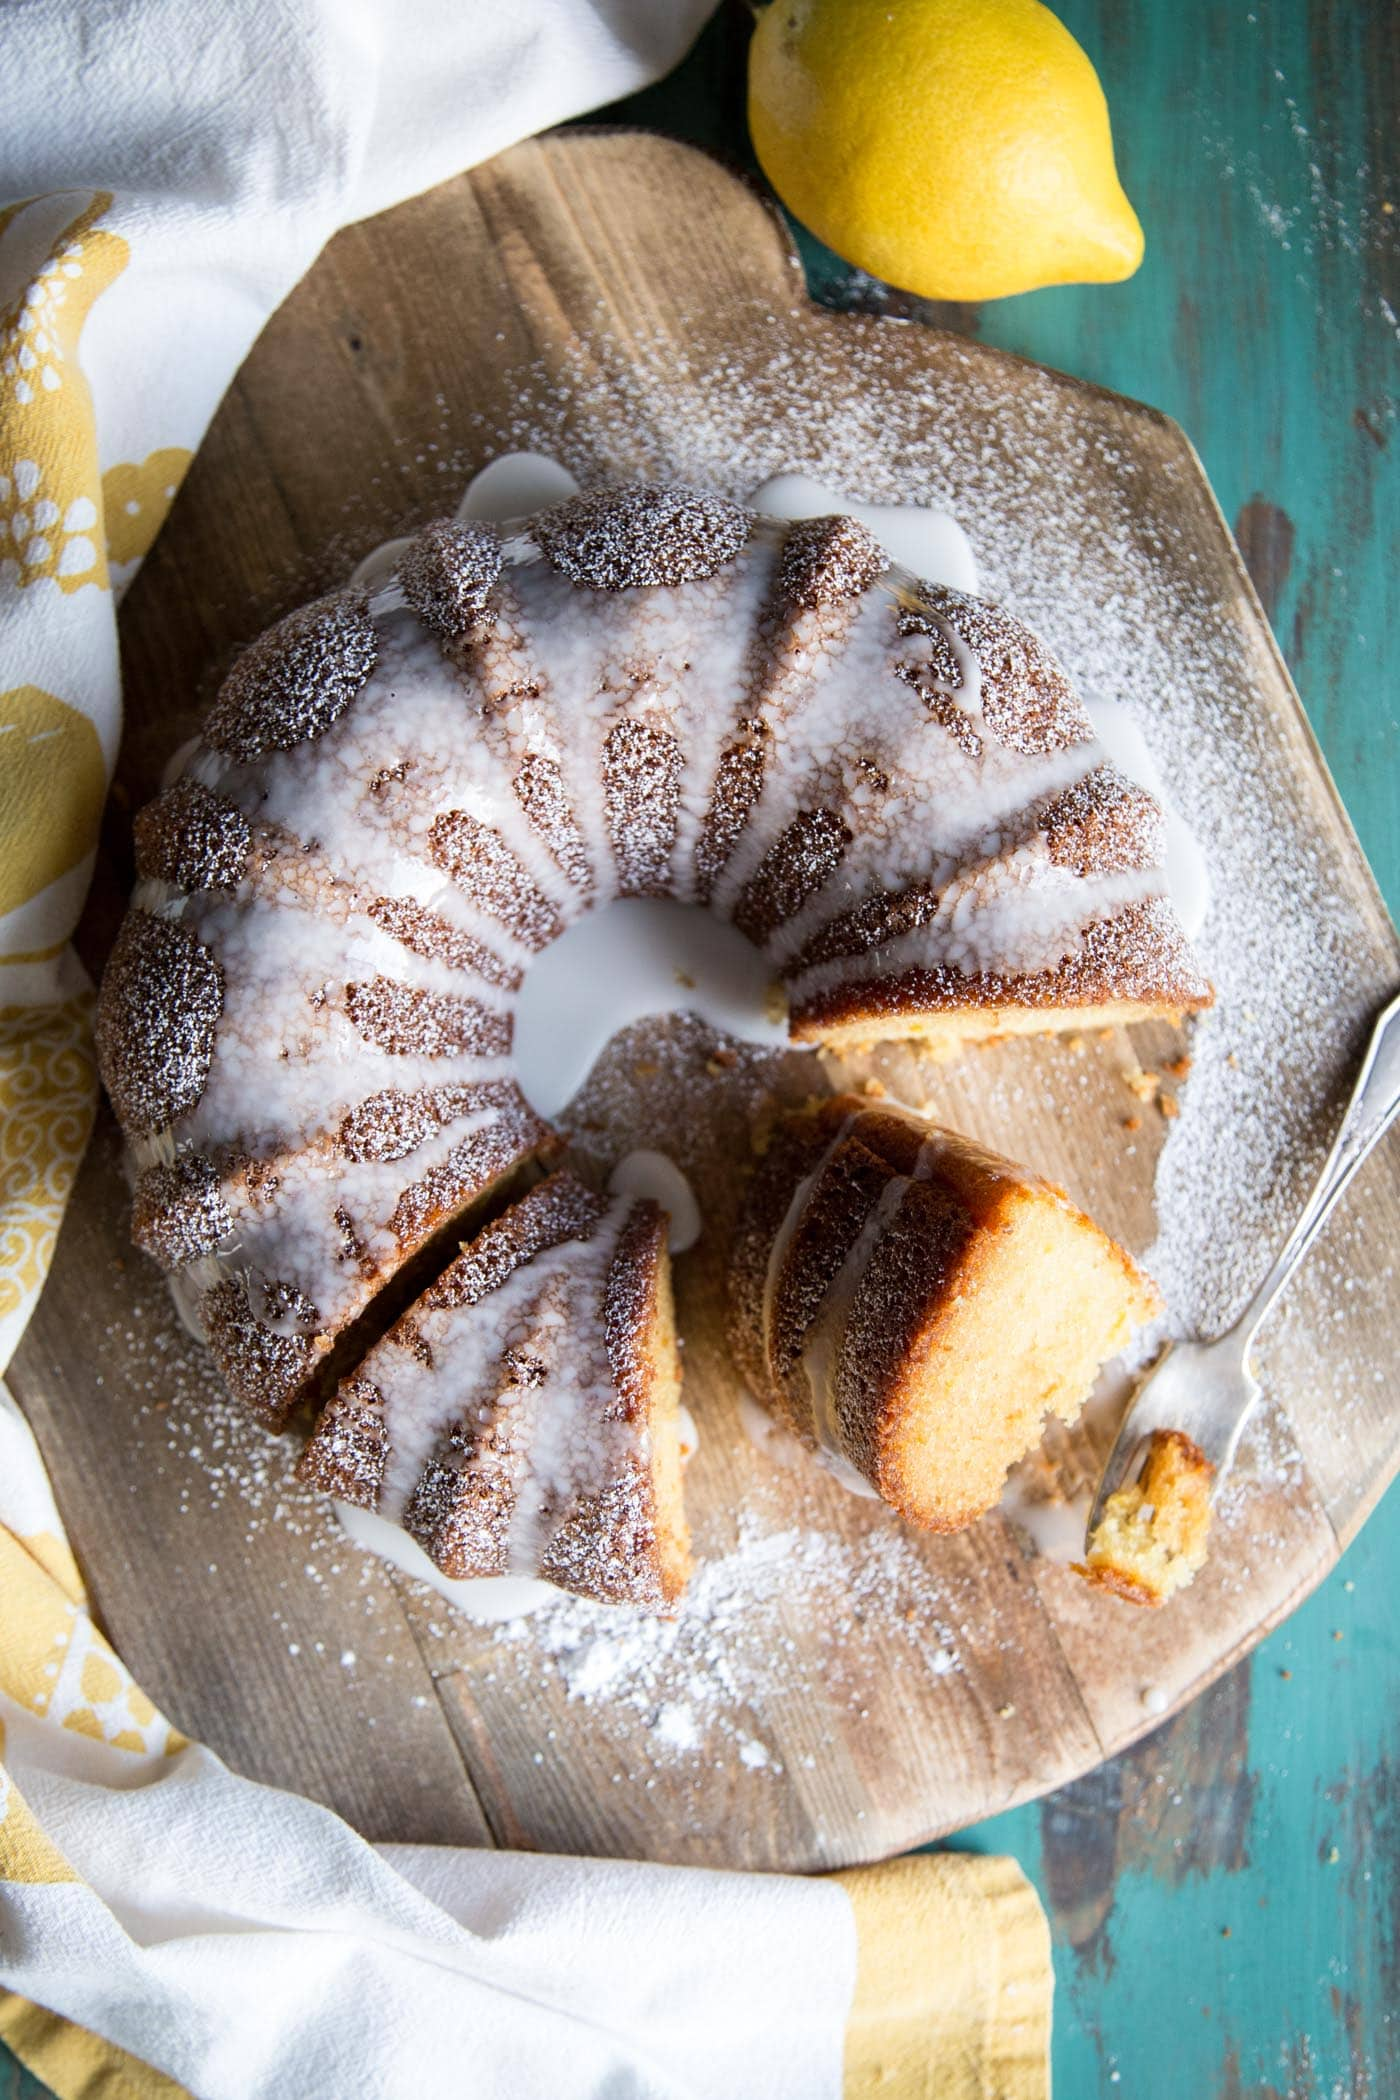 Lemon bundt cake with glaze on a wooden board